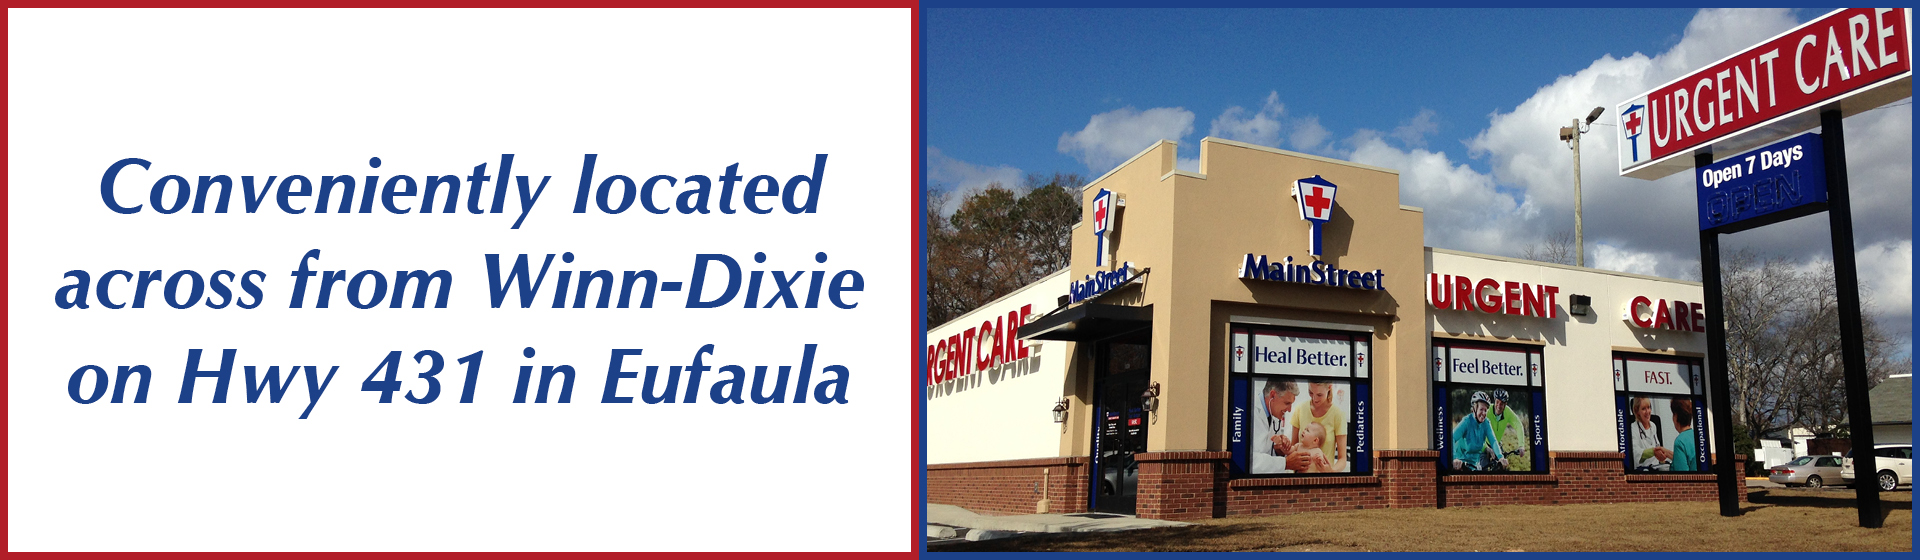 Eufaula Urgent Care